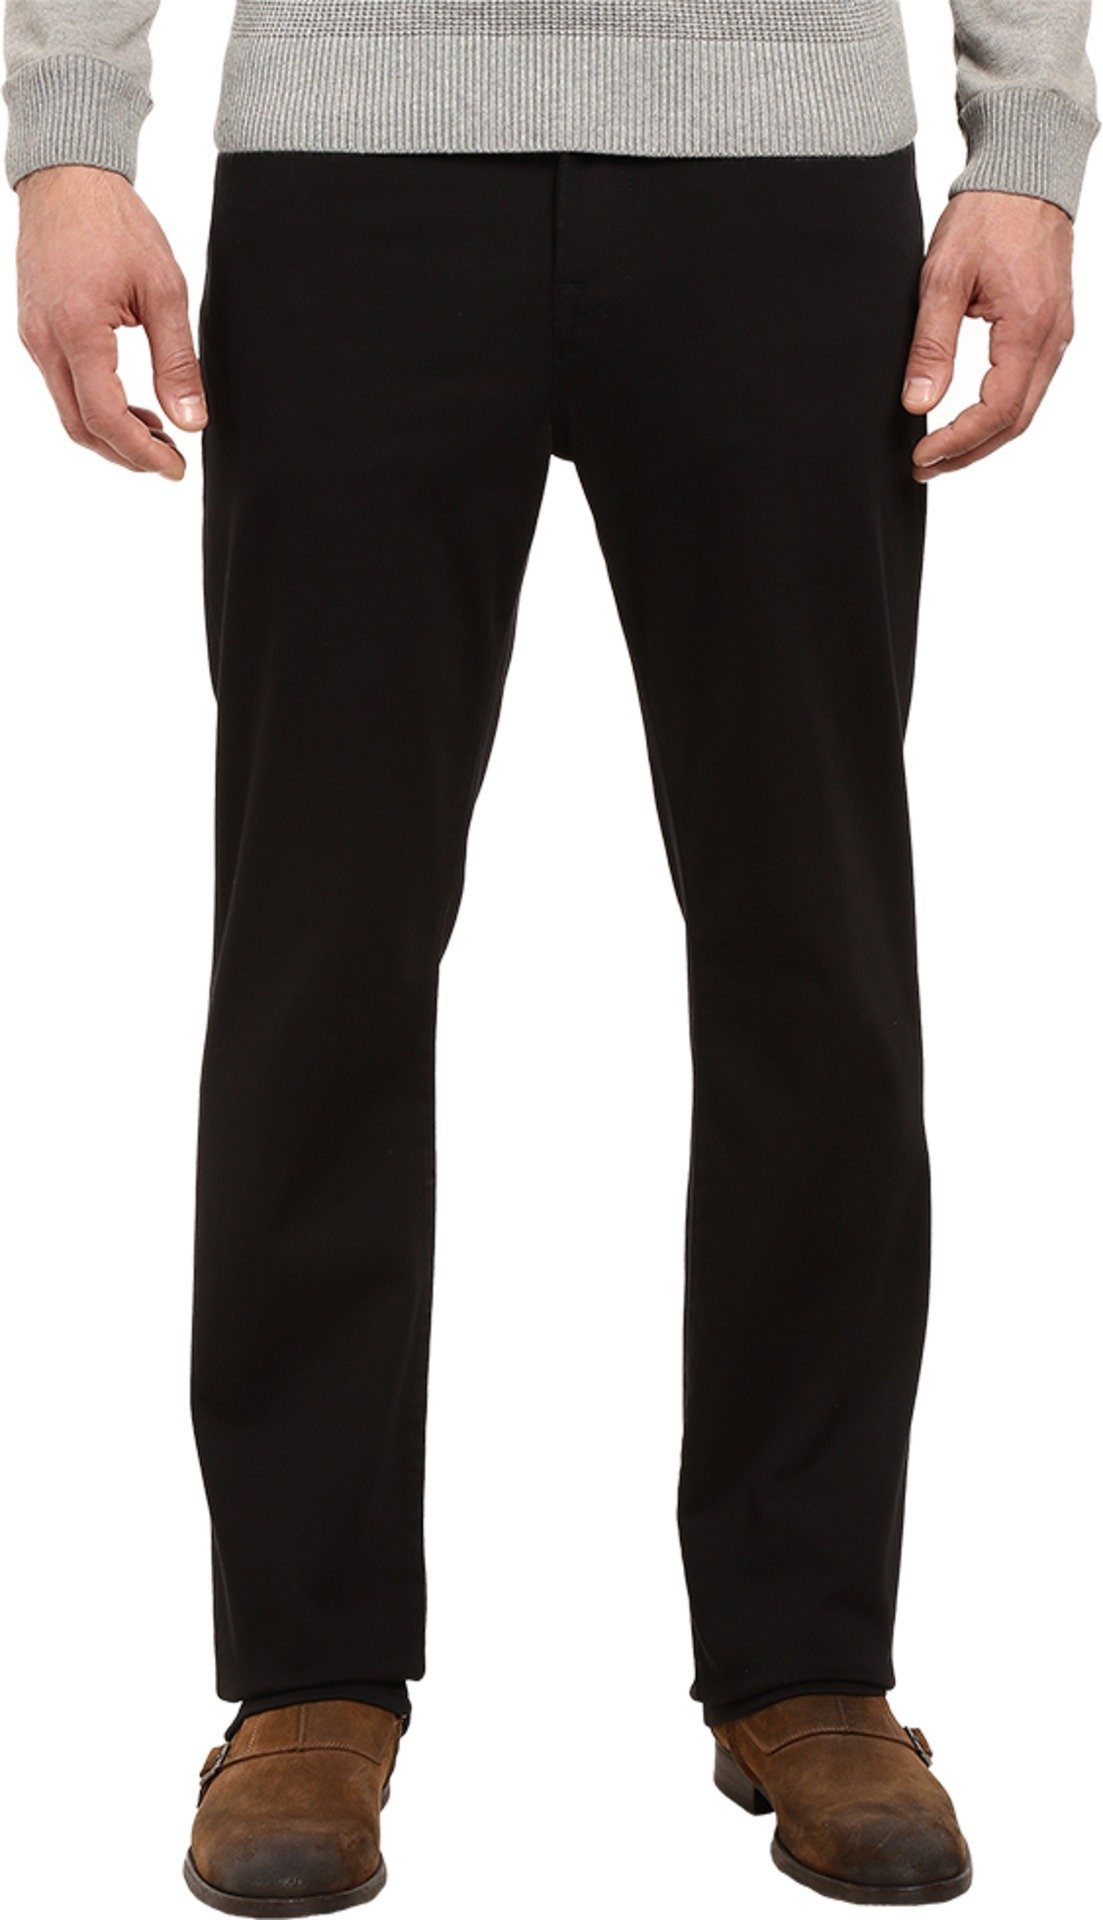 34 Heritage Men's Charisma Classic Fit Select Double in Black Black Pants